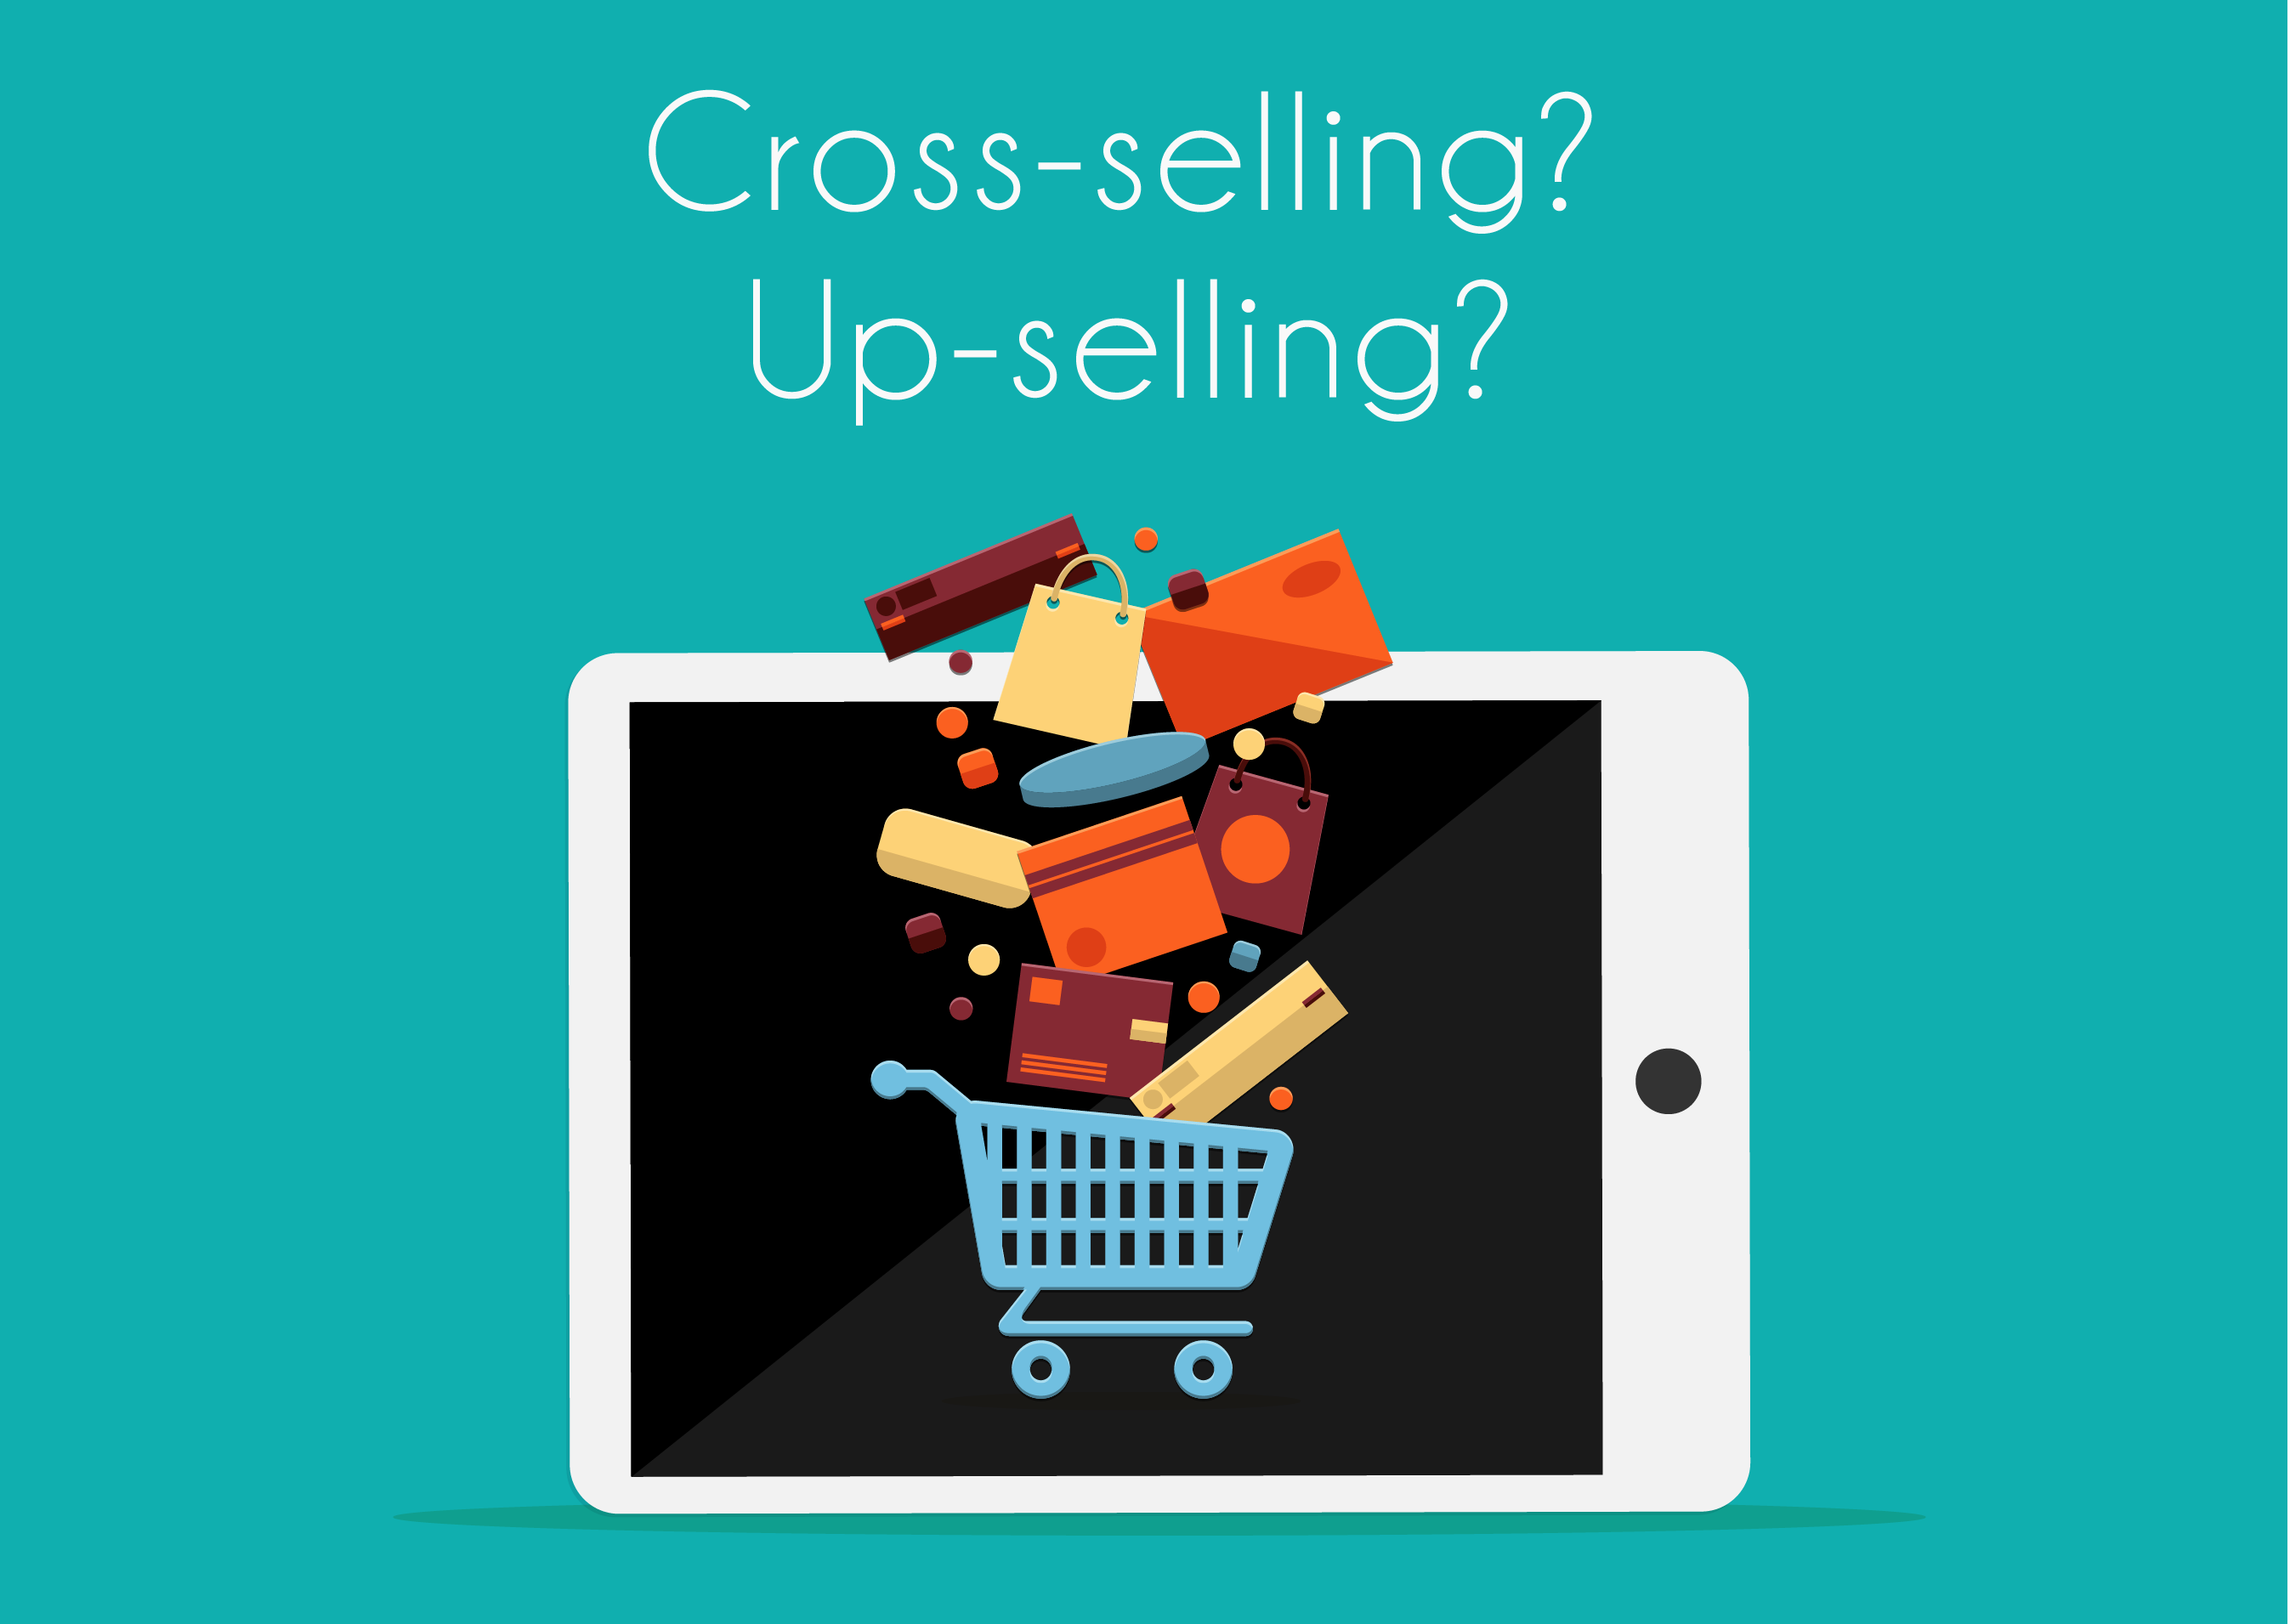 Cross-selling and up-selling automation